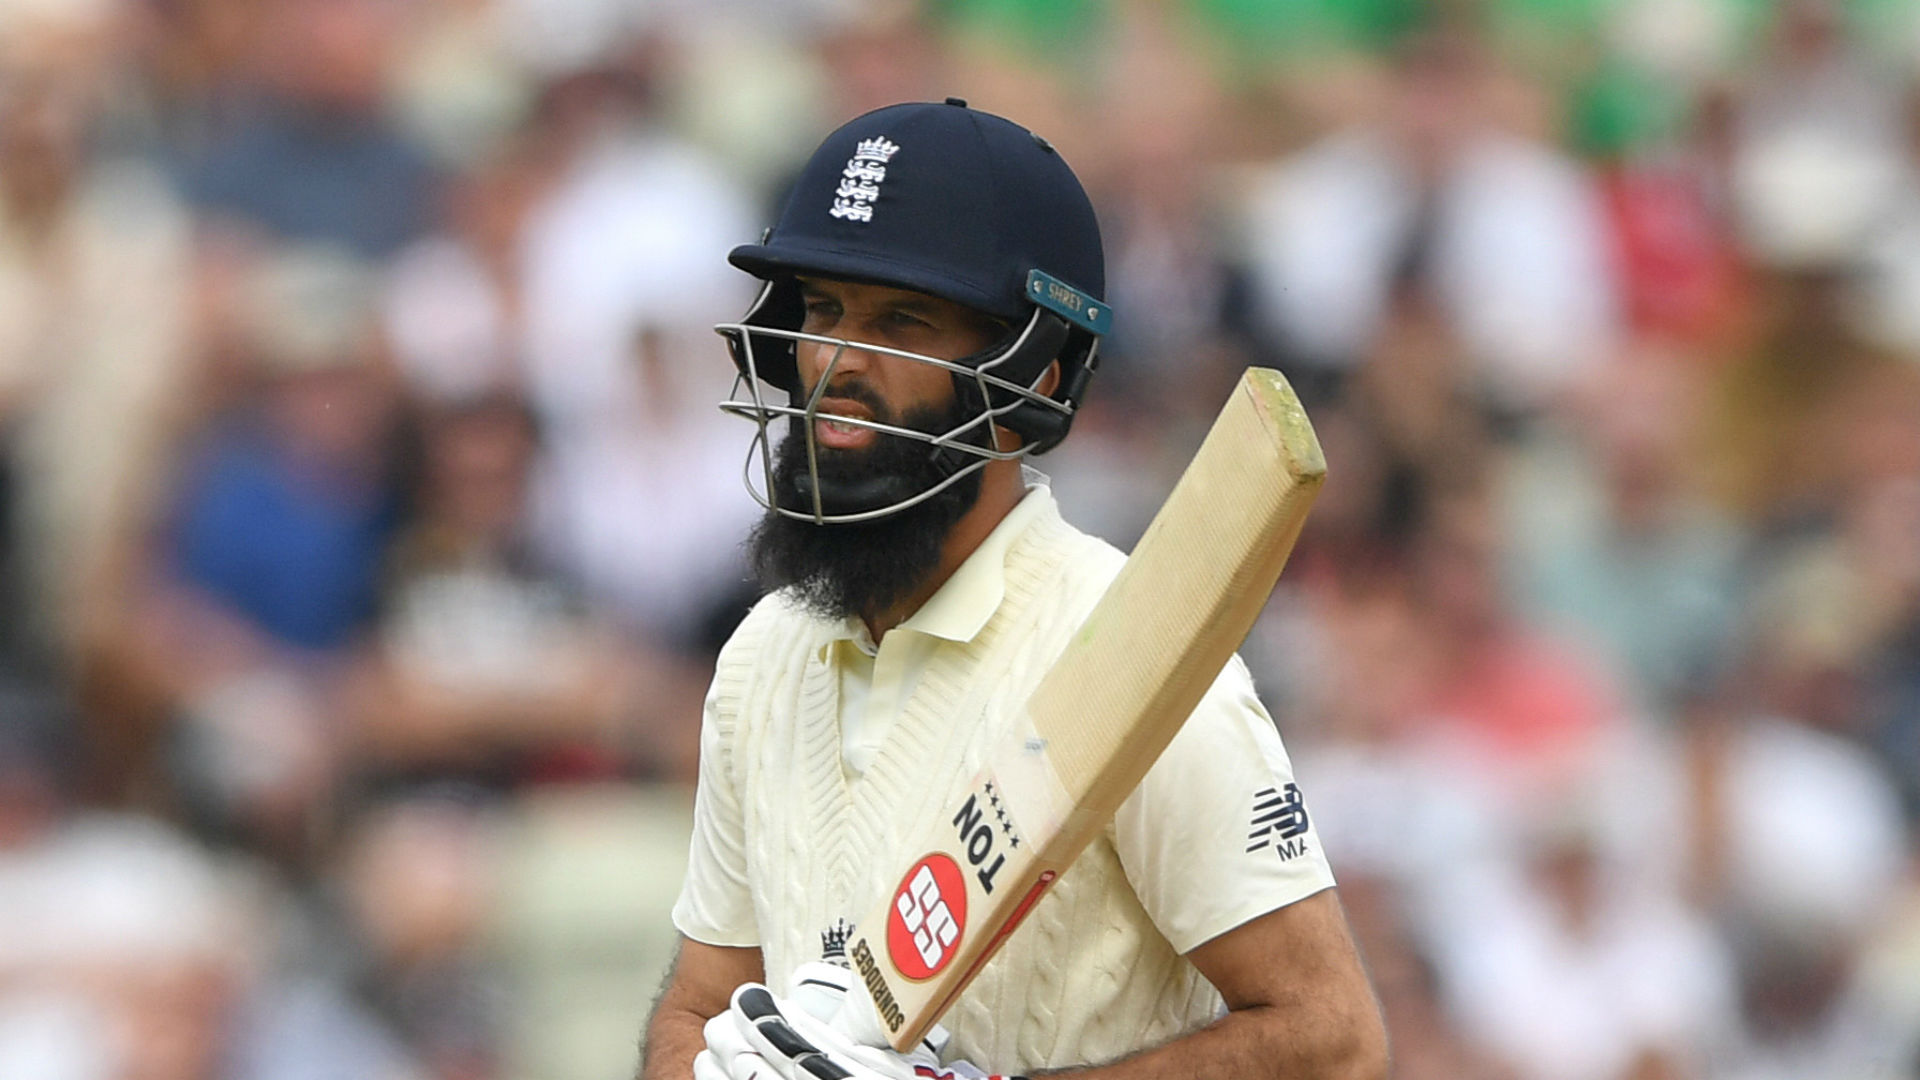 Ashes 2019: England drops Moeen Ali; Jofra Archer in line for Test debut